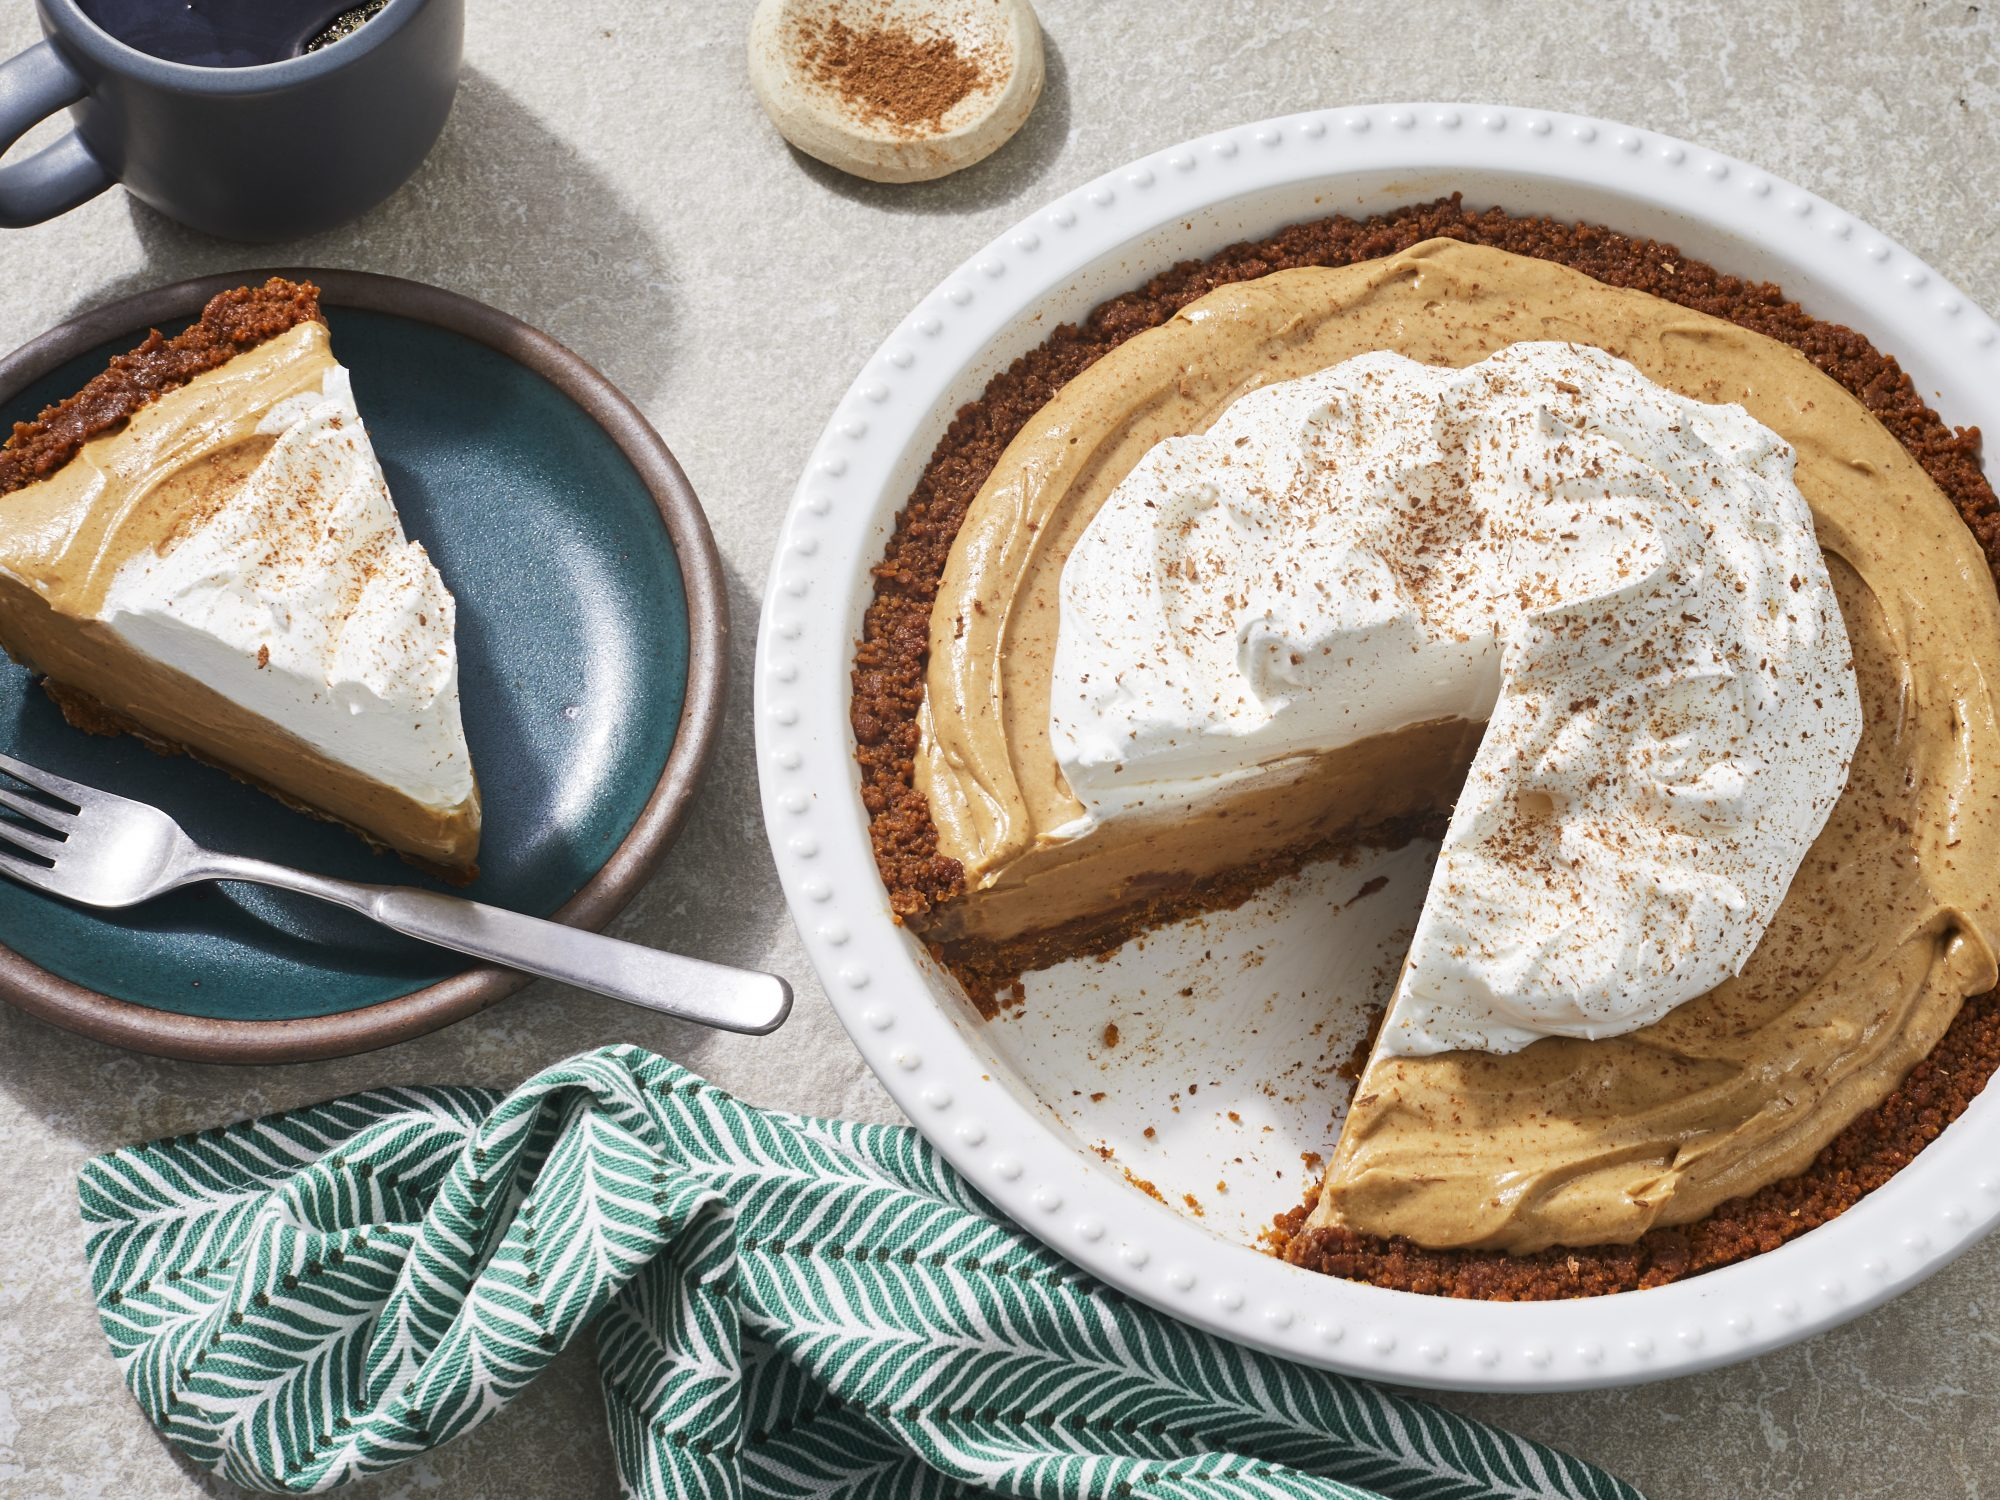 mr - Gingerbread Pie Image